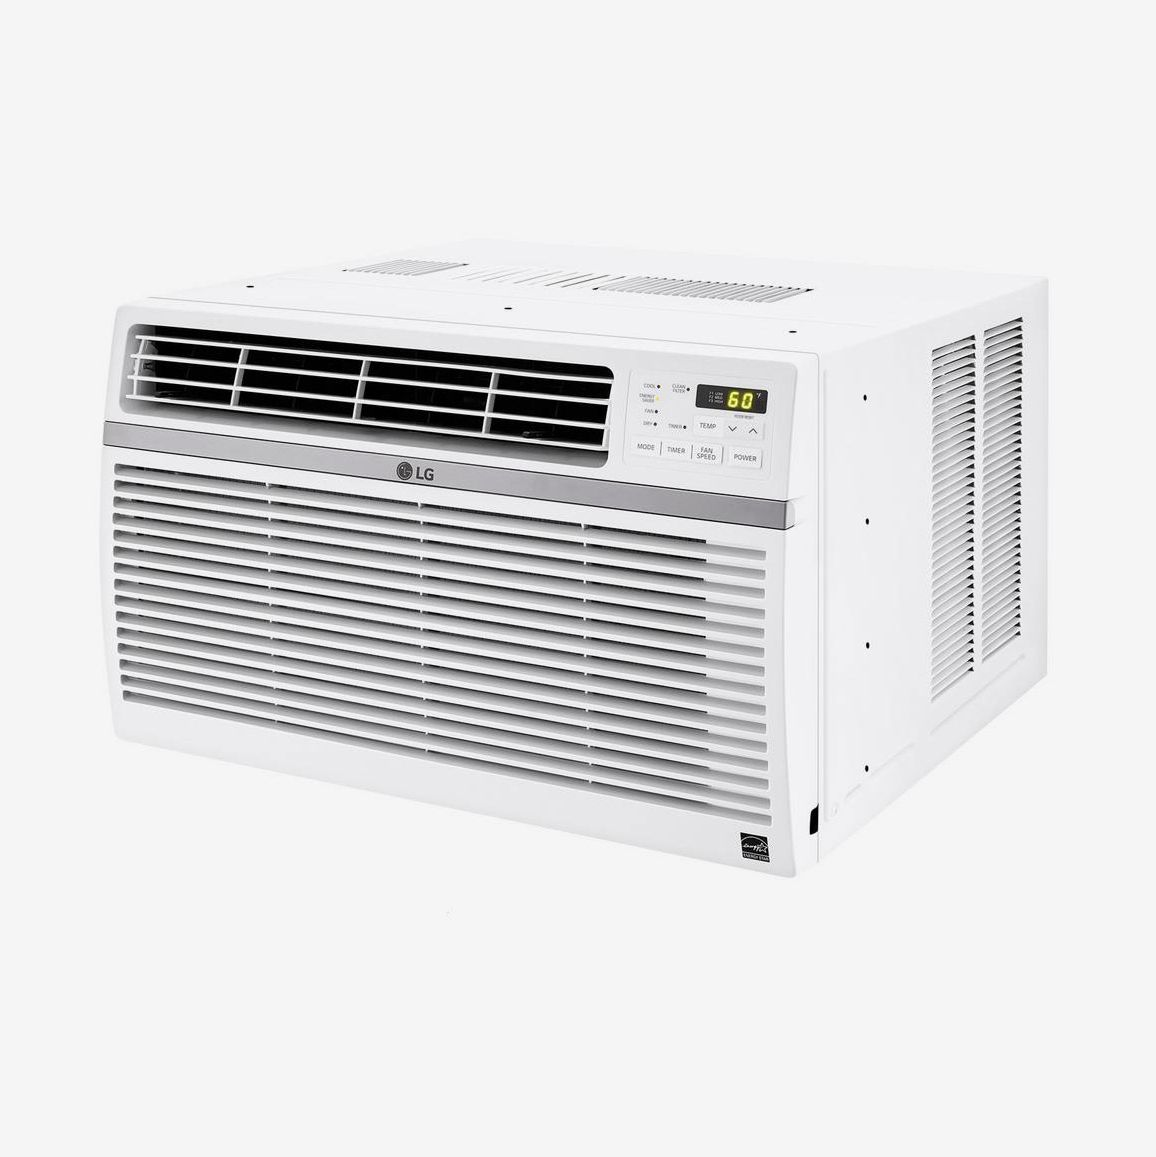 11 Best Window Air Conditioners 2021 The Strategist